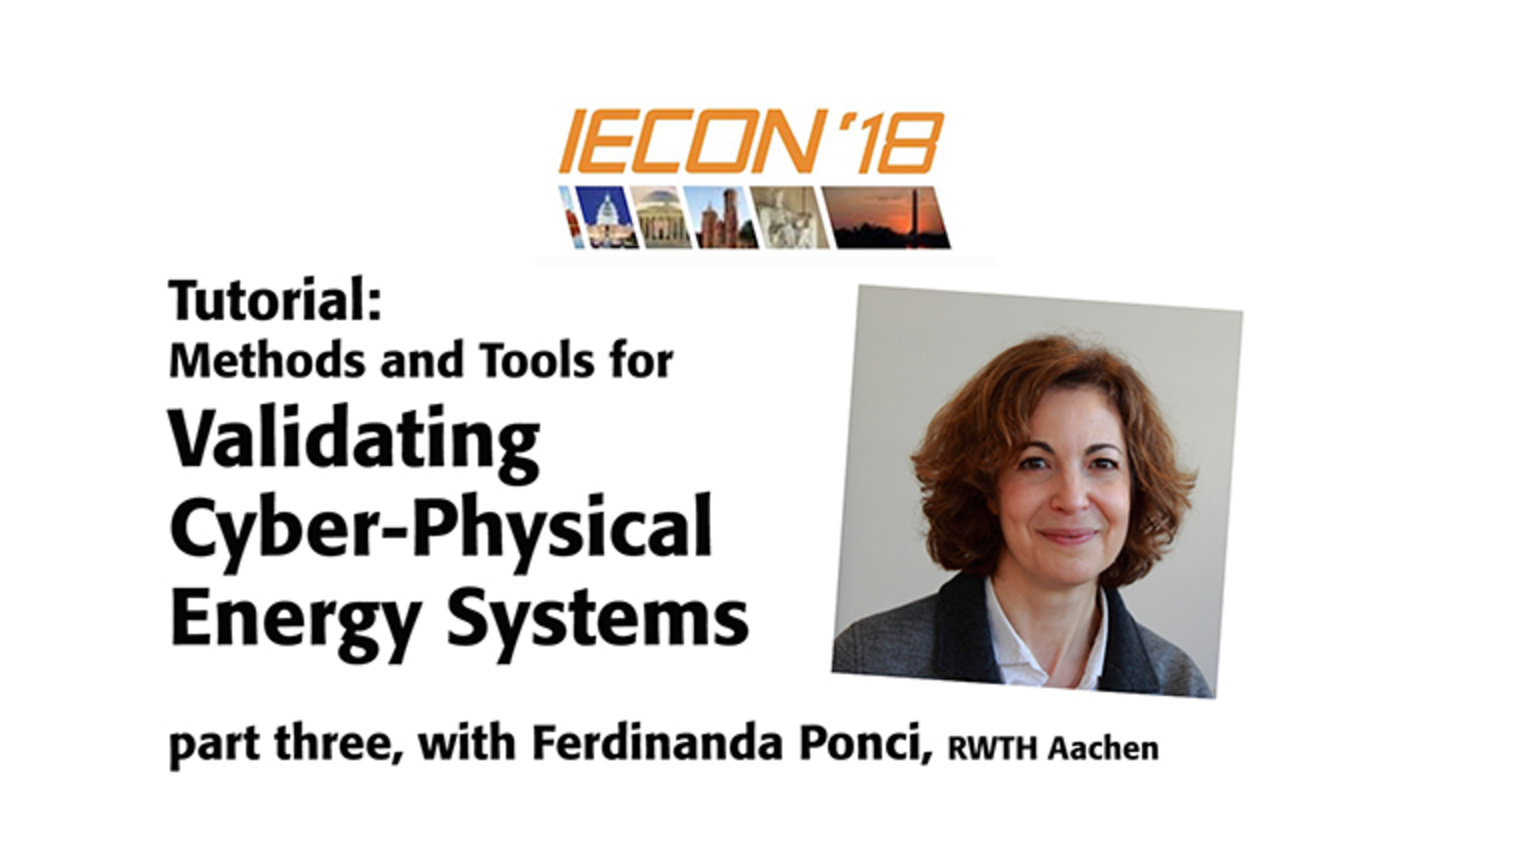 Validating Cyber-Physical Energy Systems, Part 3: IECON 2018